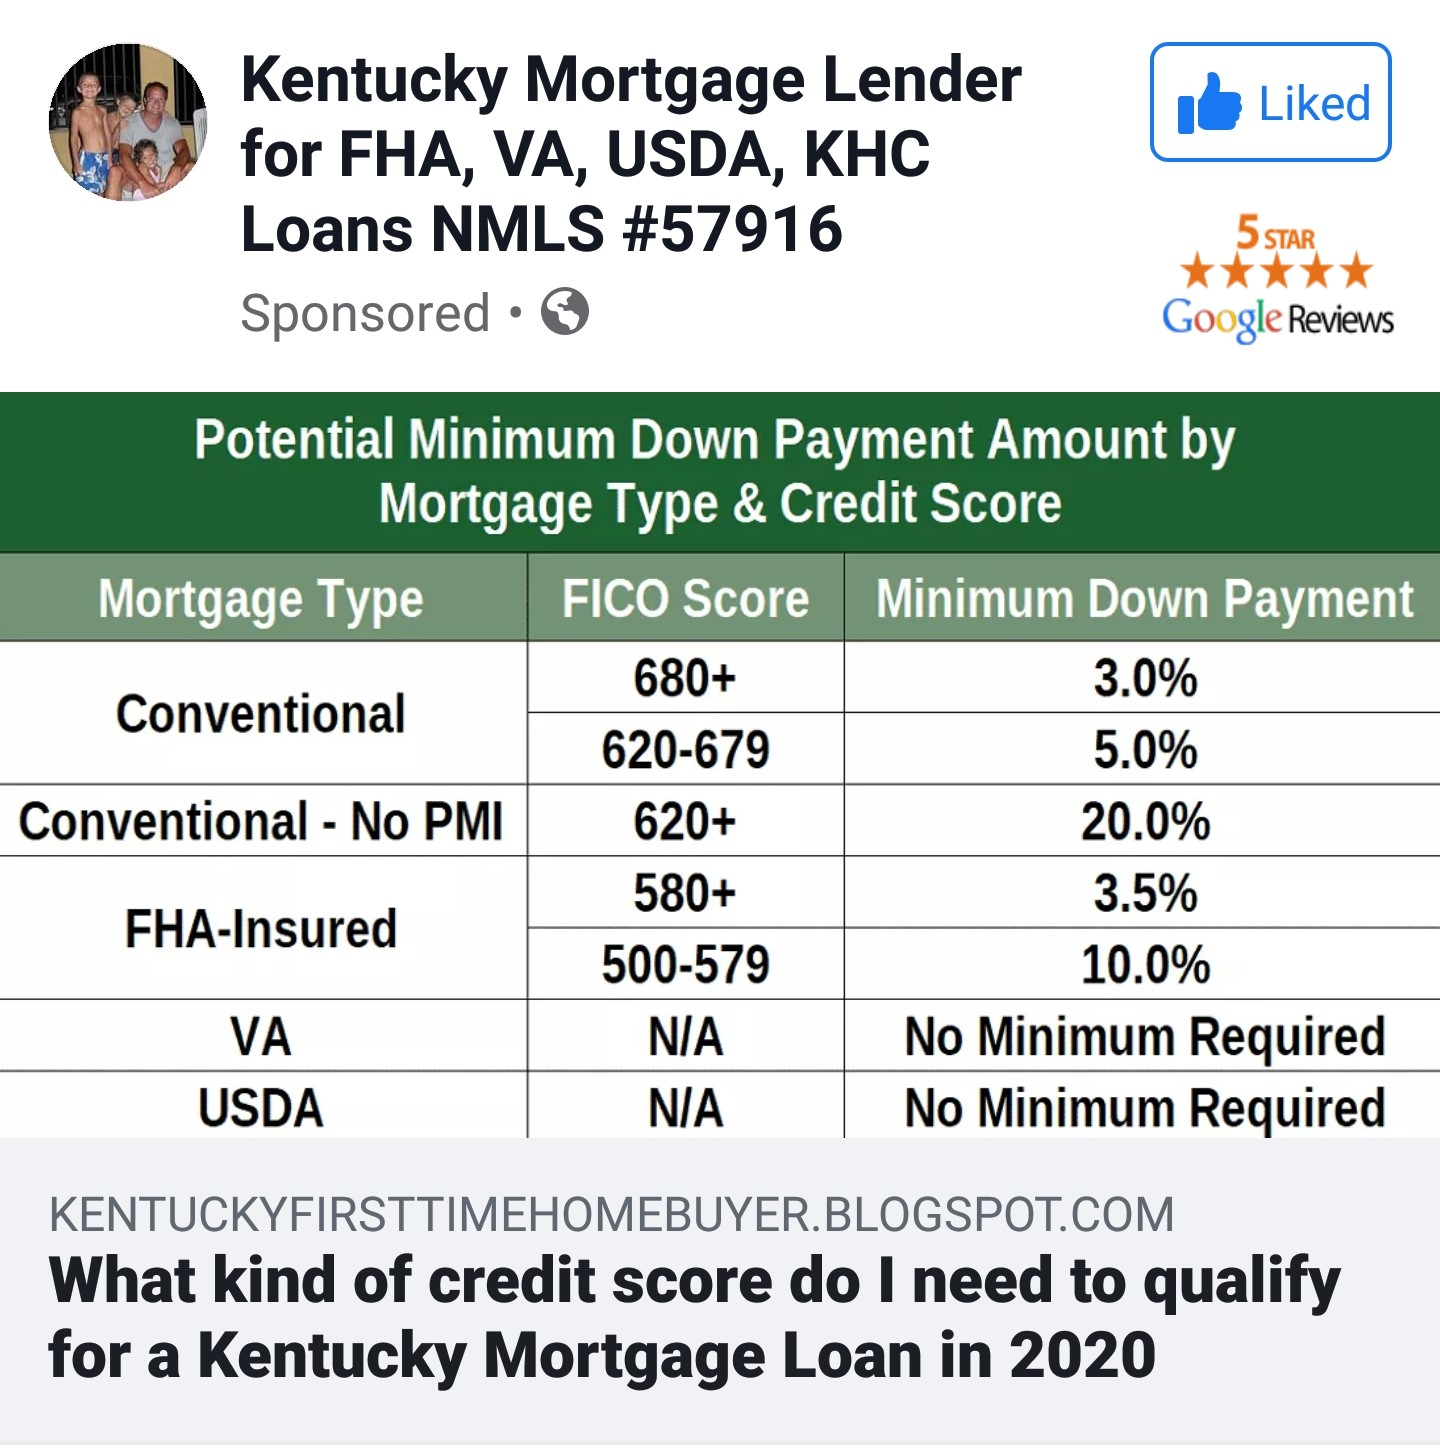 Louisville Kentucky Mortgage Lender For Fha Va Khc Usda And Rural Housing Kentucky Mortgage Credit Scores Required For A Kentucky Mortgage Loan Approval In 2020